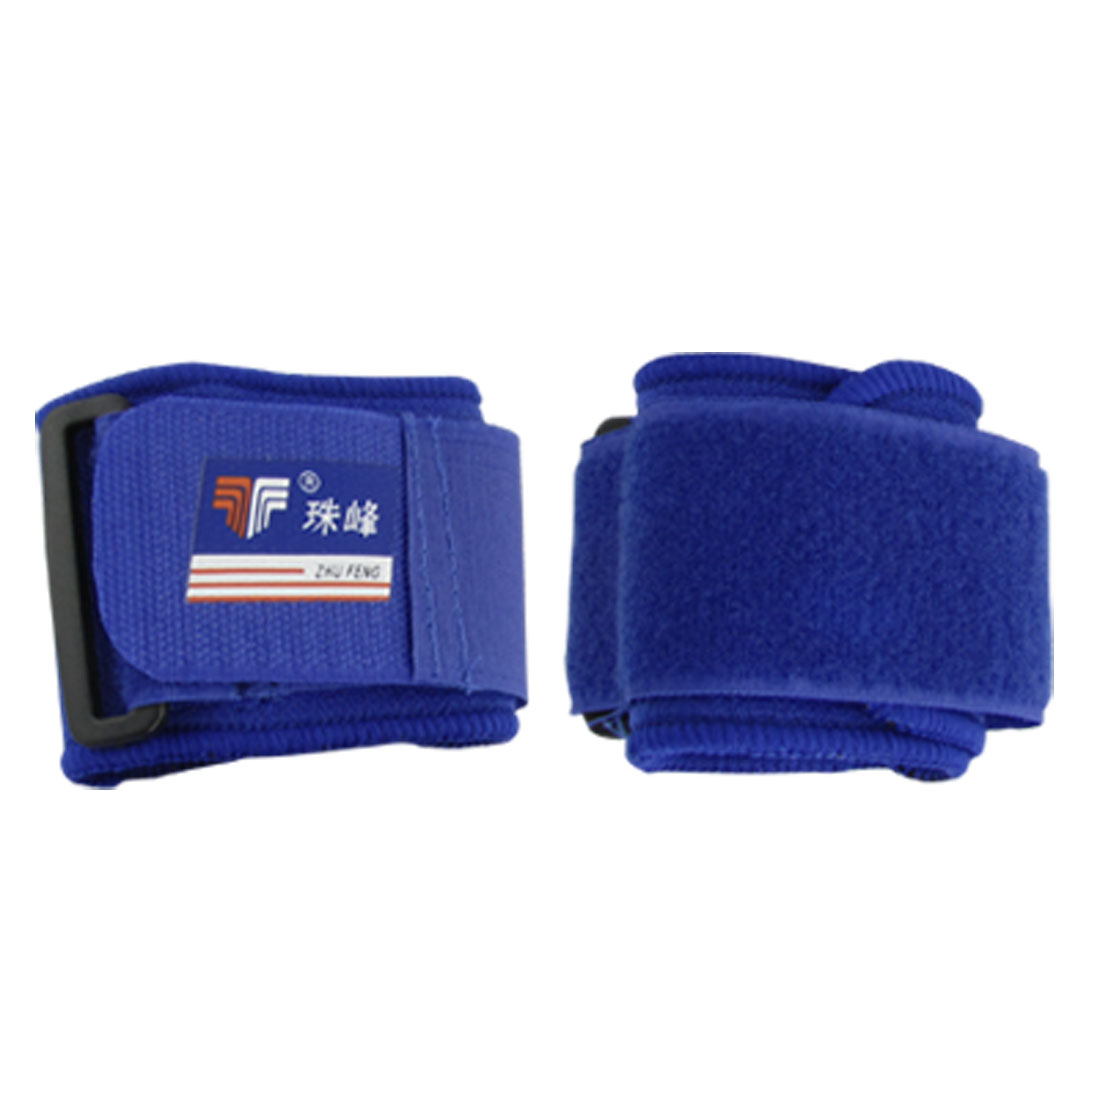 2 PCS Blue Hook and Loop Fastener Wrist Sports Brace Support Neoprene Protector